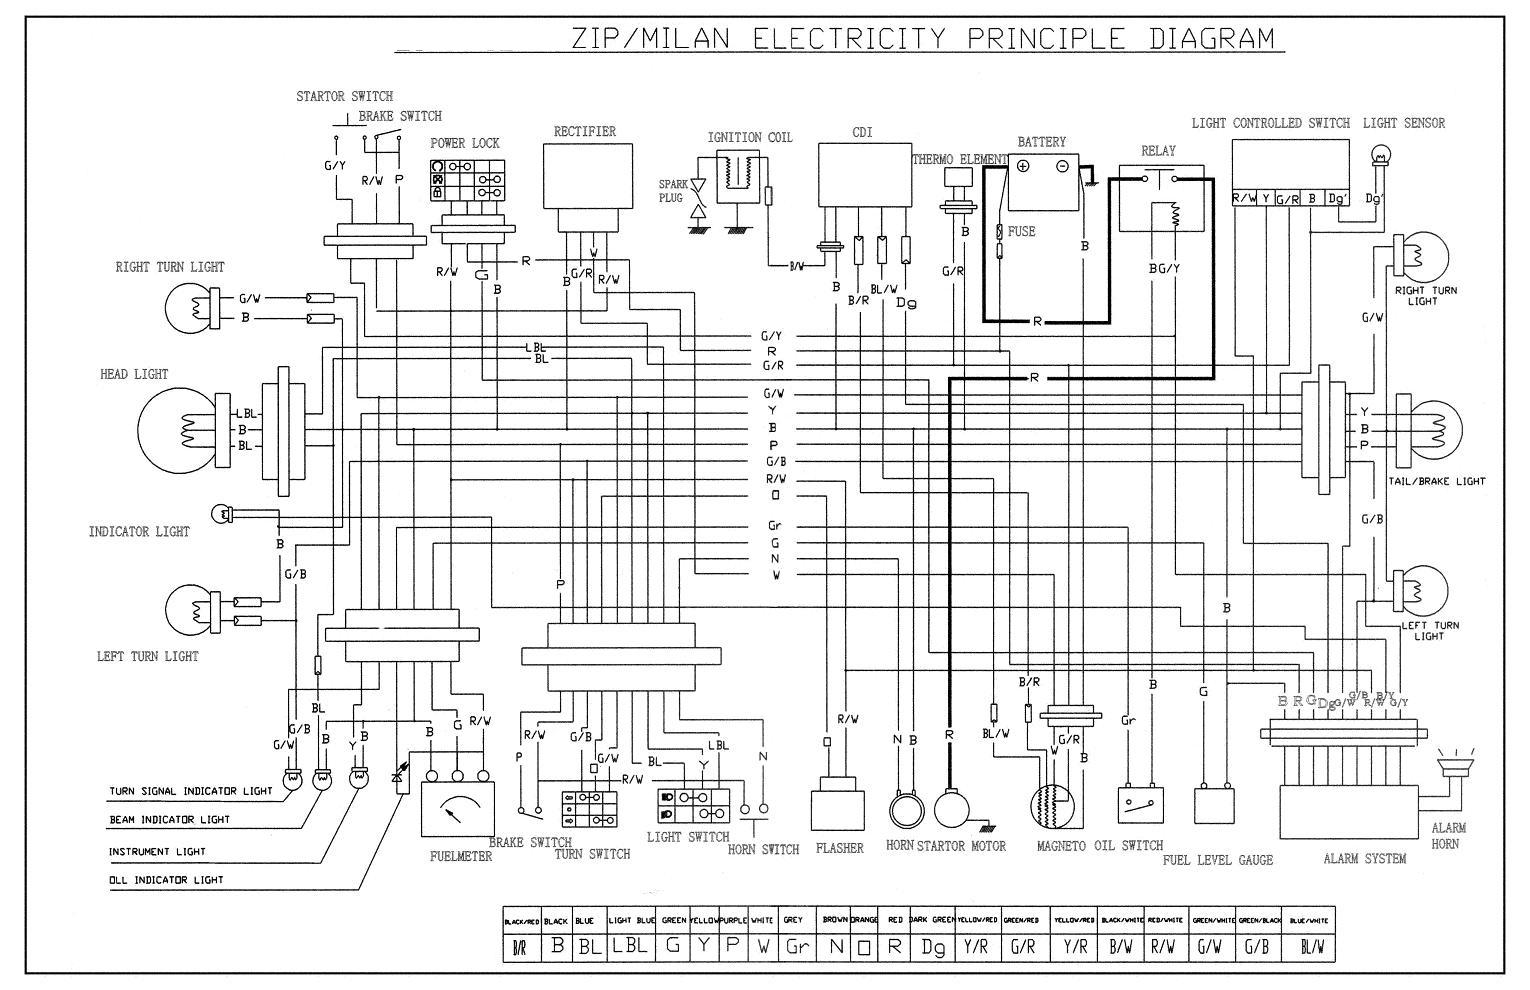 Electric Fans Not Running 2899670 furthermore 2002 Toyota Camry Engine Mount Diagram also 1999 Vw Cabrio Engine Diagram likewise Vw Engine Crankshaft besides 99 Audi A4 Engine Diagram. on fuse box on audi a6 2006